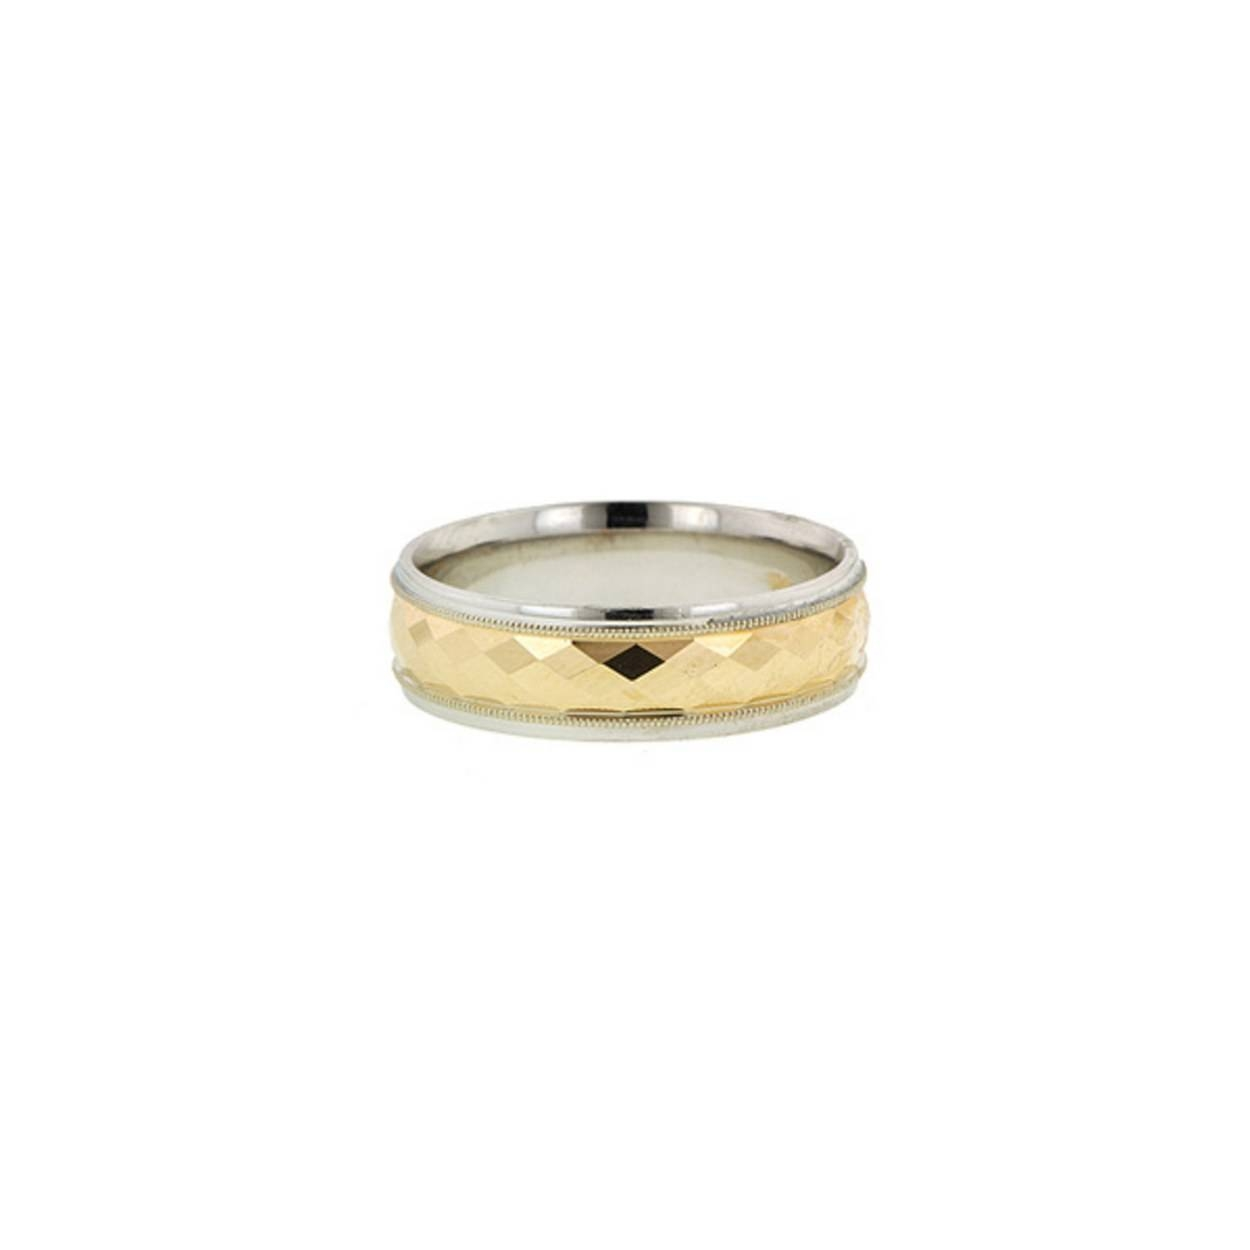 15 Men's Wedding Bands Your Groom Won't Want To Take Off | Glamour Intended For Men's Wedding Bands Styles (View 1 of 15)